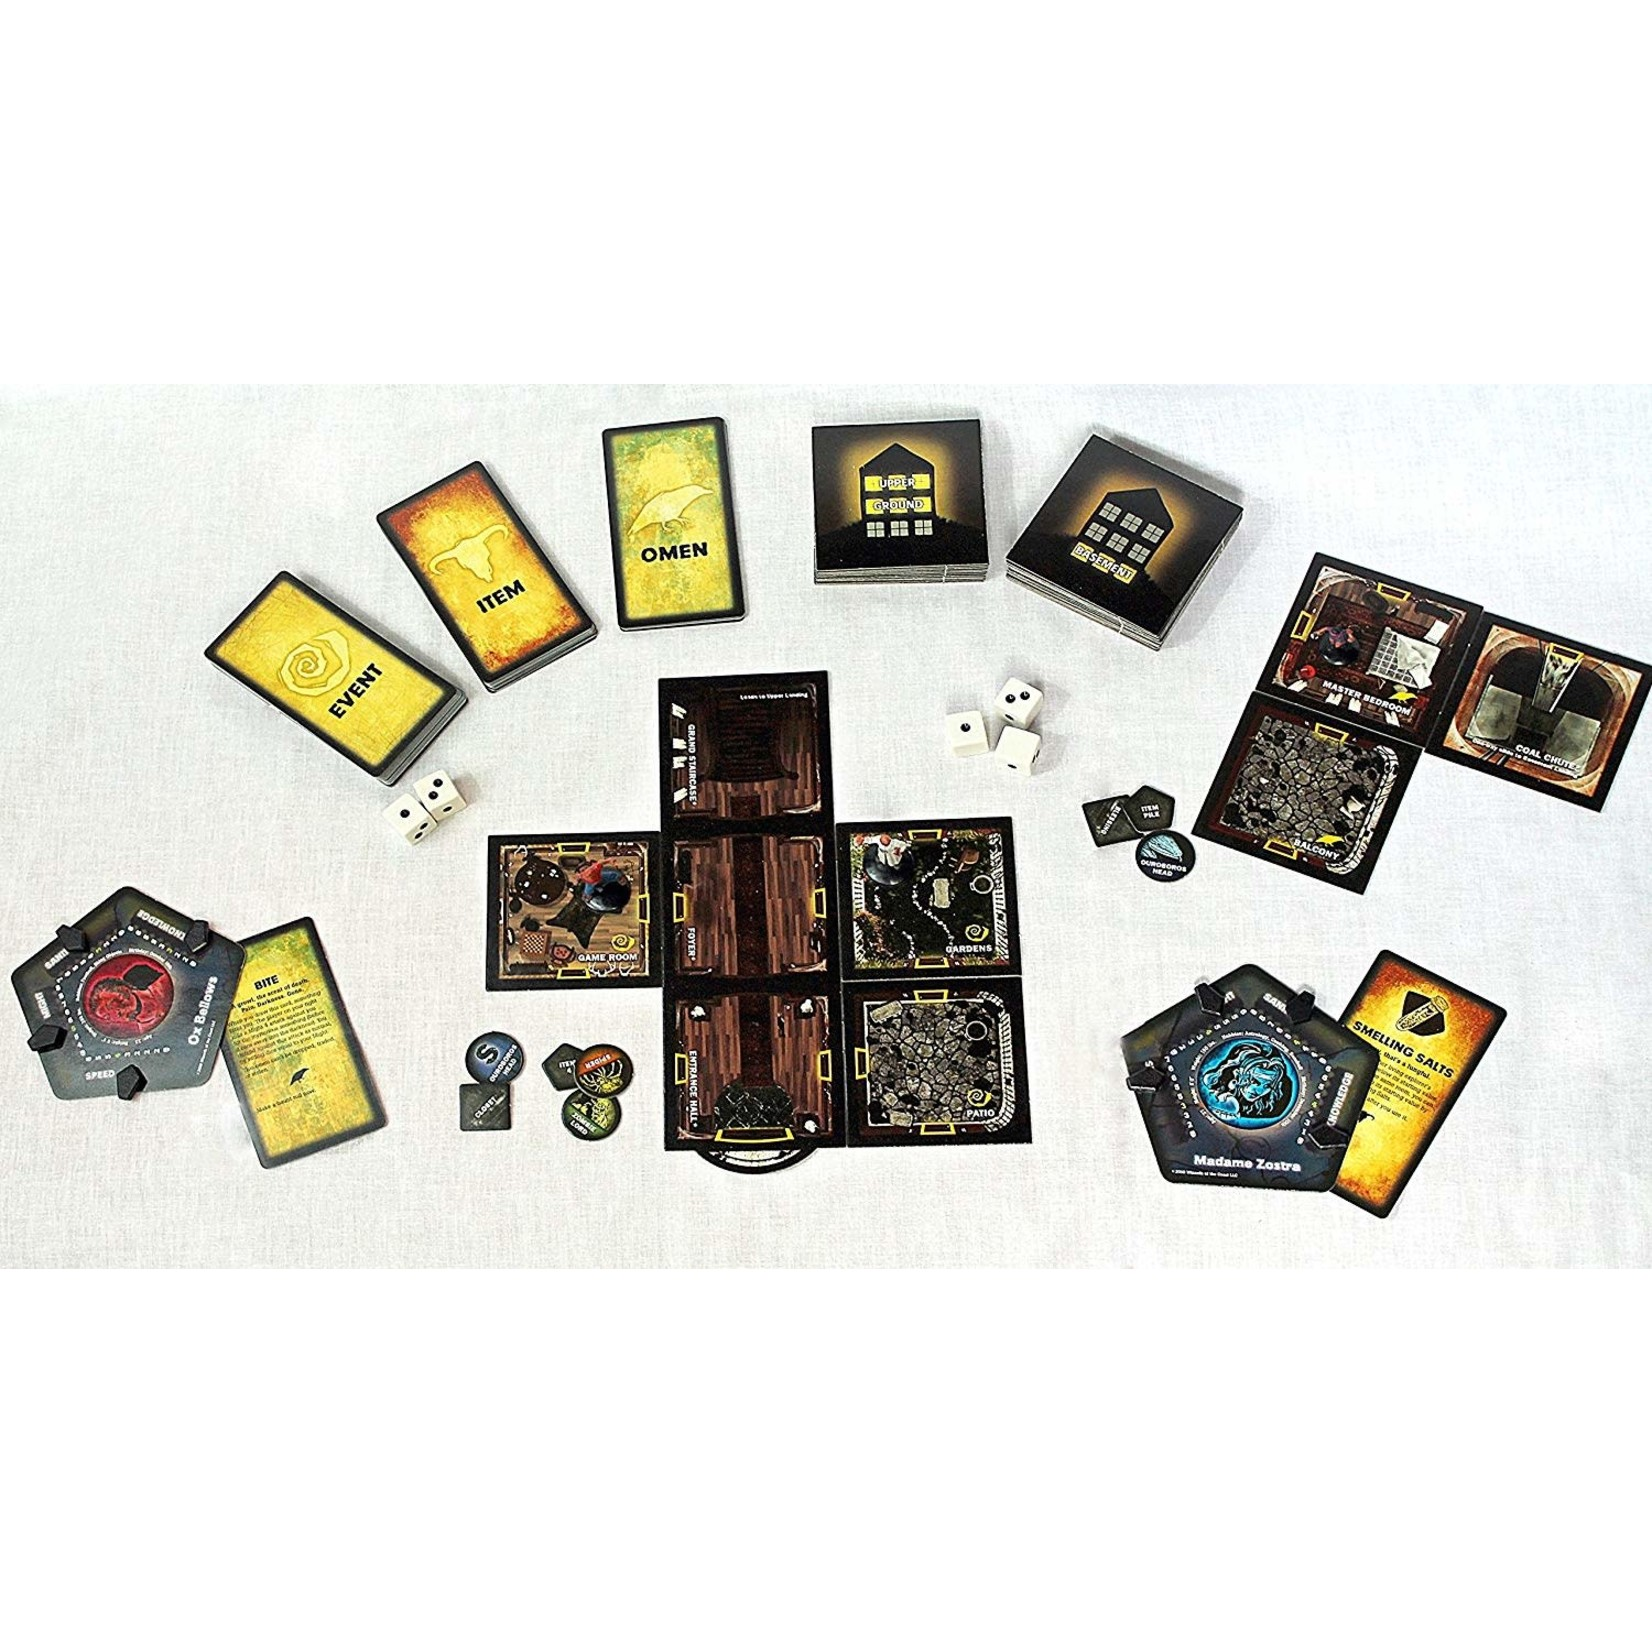 WOTC AH Betrayal at House on the Hill